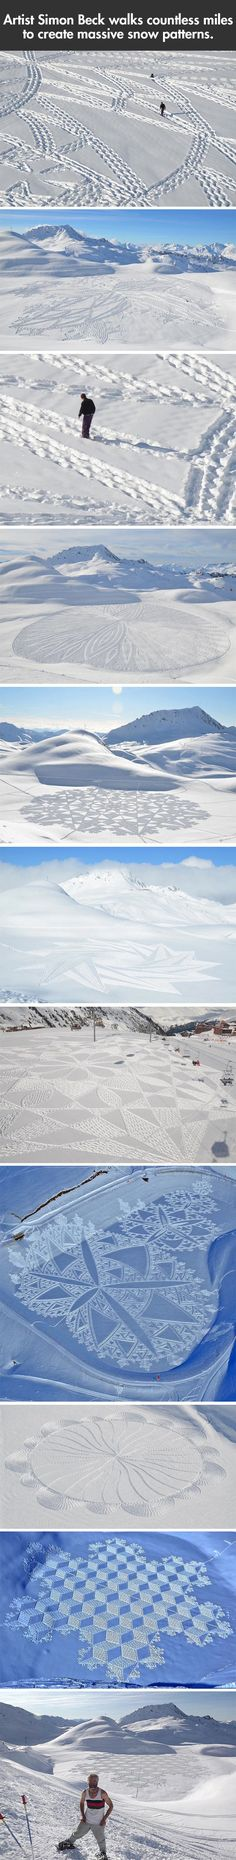 This guy walks miles to make art that disappears days later.the arctic version of crop circles. This would keep kids occupied for hours on snow days. Land Art, Drawn Art, Creation Art, Snow Art, Amazing Art, Awesome, Amazing Things, Picture Day, Wassily Kandinsky